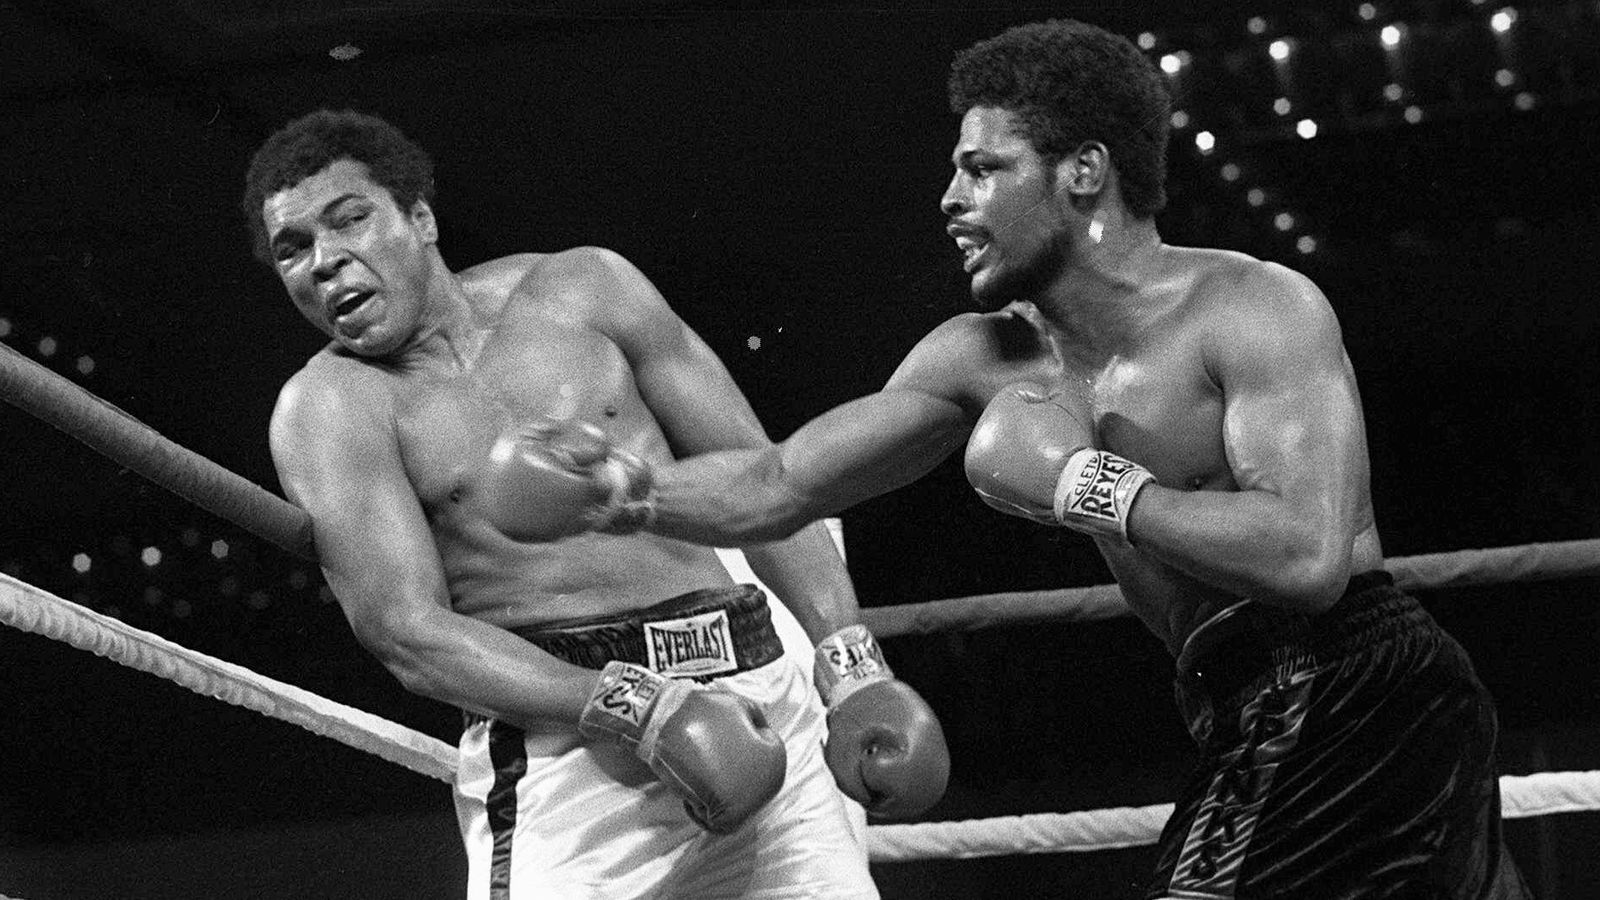 Leon Spinks, the boxer who shocked the world by beating Muhammad Ali, dies aged 67